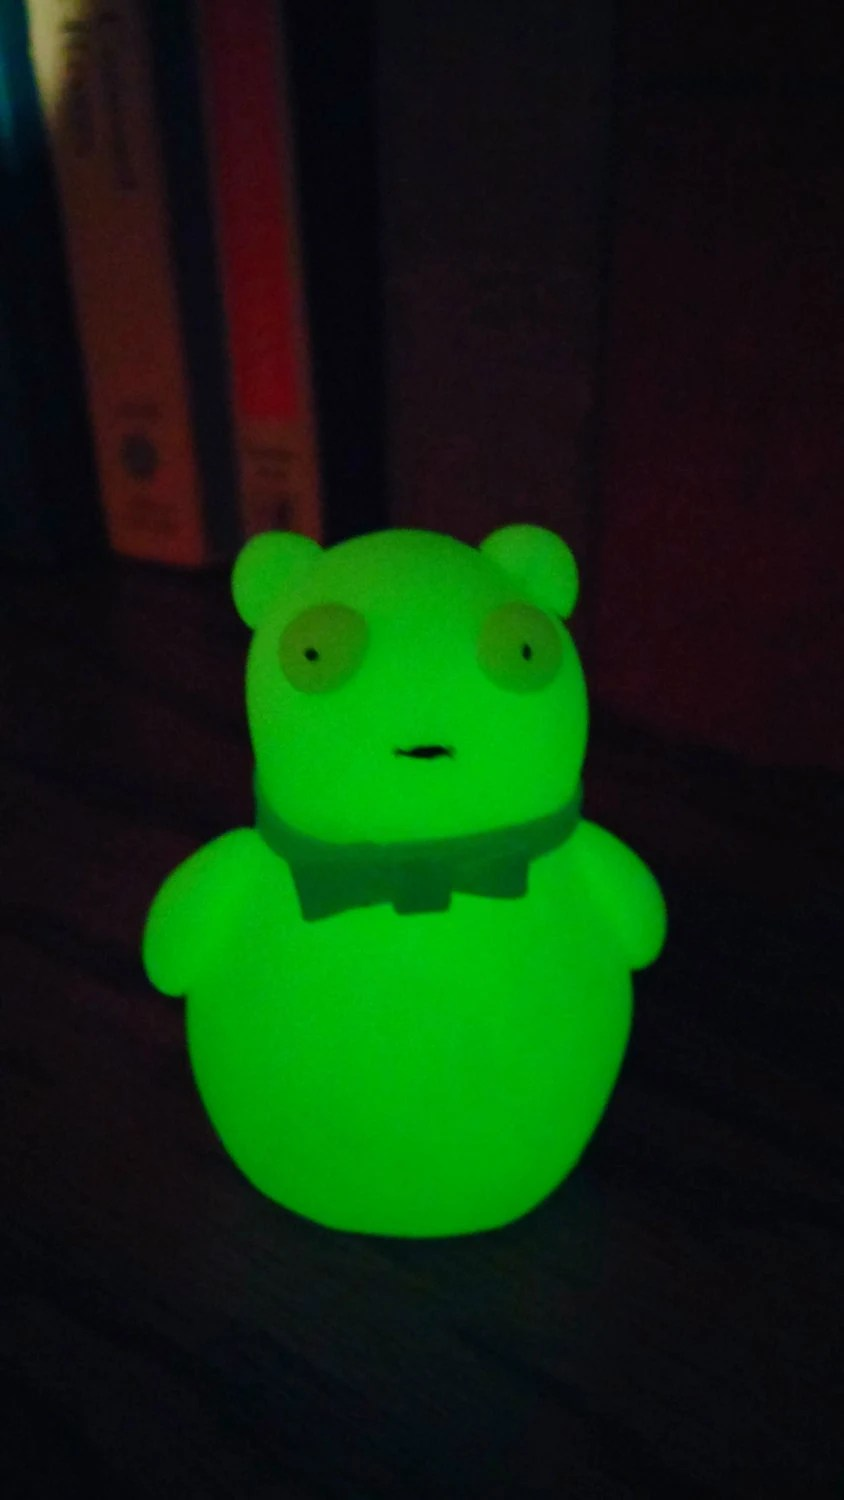 Kuchi Kopi Night Light Ikea Kuchi Kopi Bob's Burgers Inspired Glow In The By Afkforcosplay